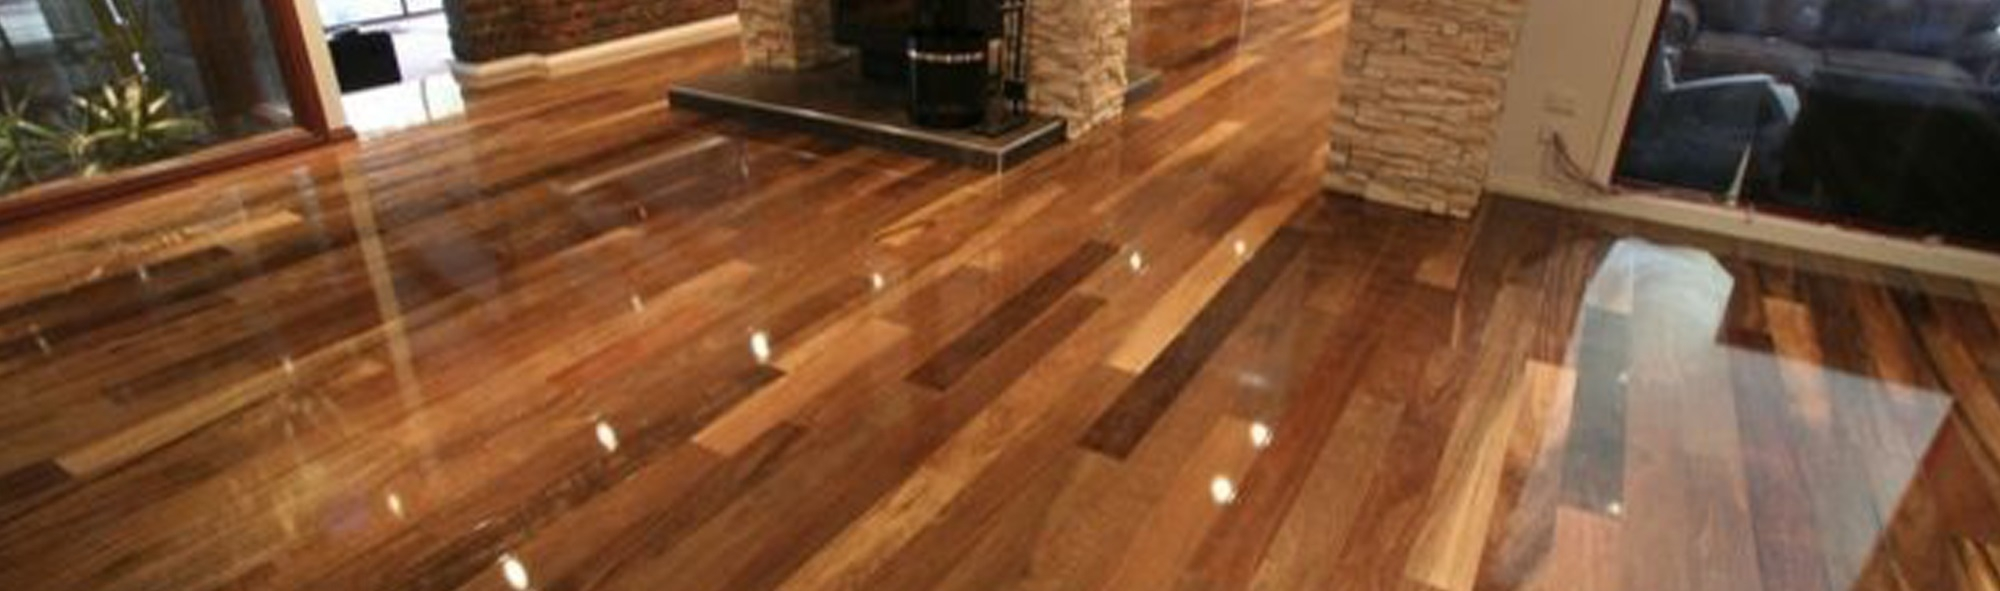 Clear Epoxy Wood Floor Coating